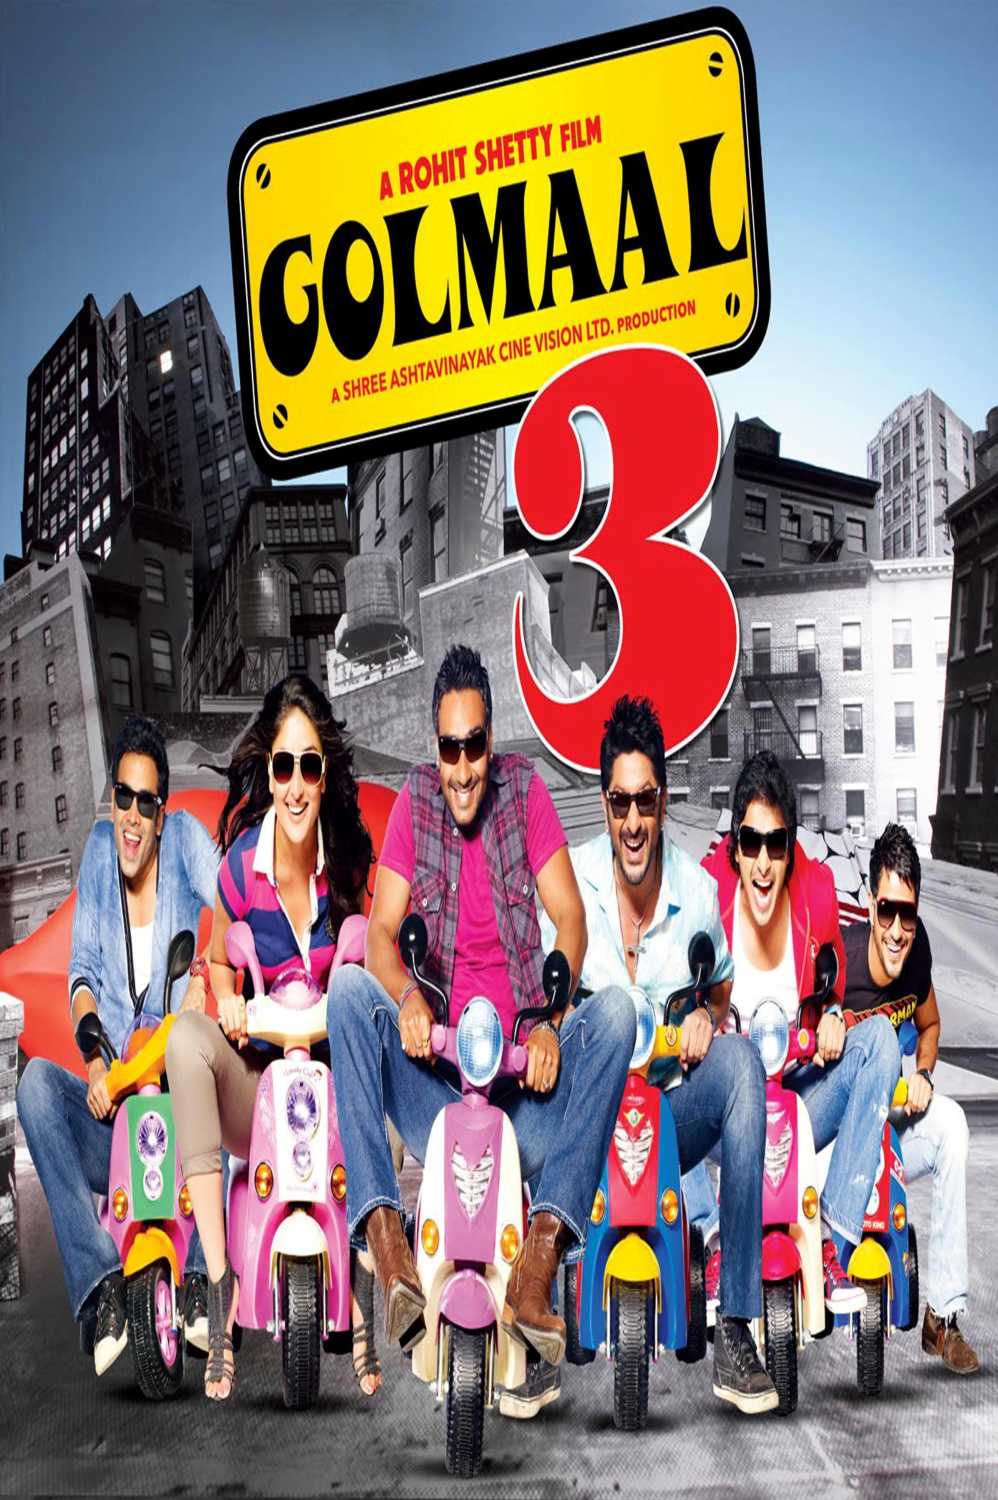 Golmaal 3 2010 1080p Hindi BluRay REMUX AVC DTS ESUBS KartiKing | G- Drive | 31 GB |